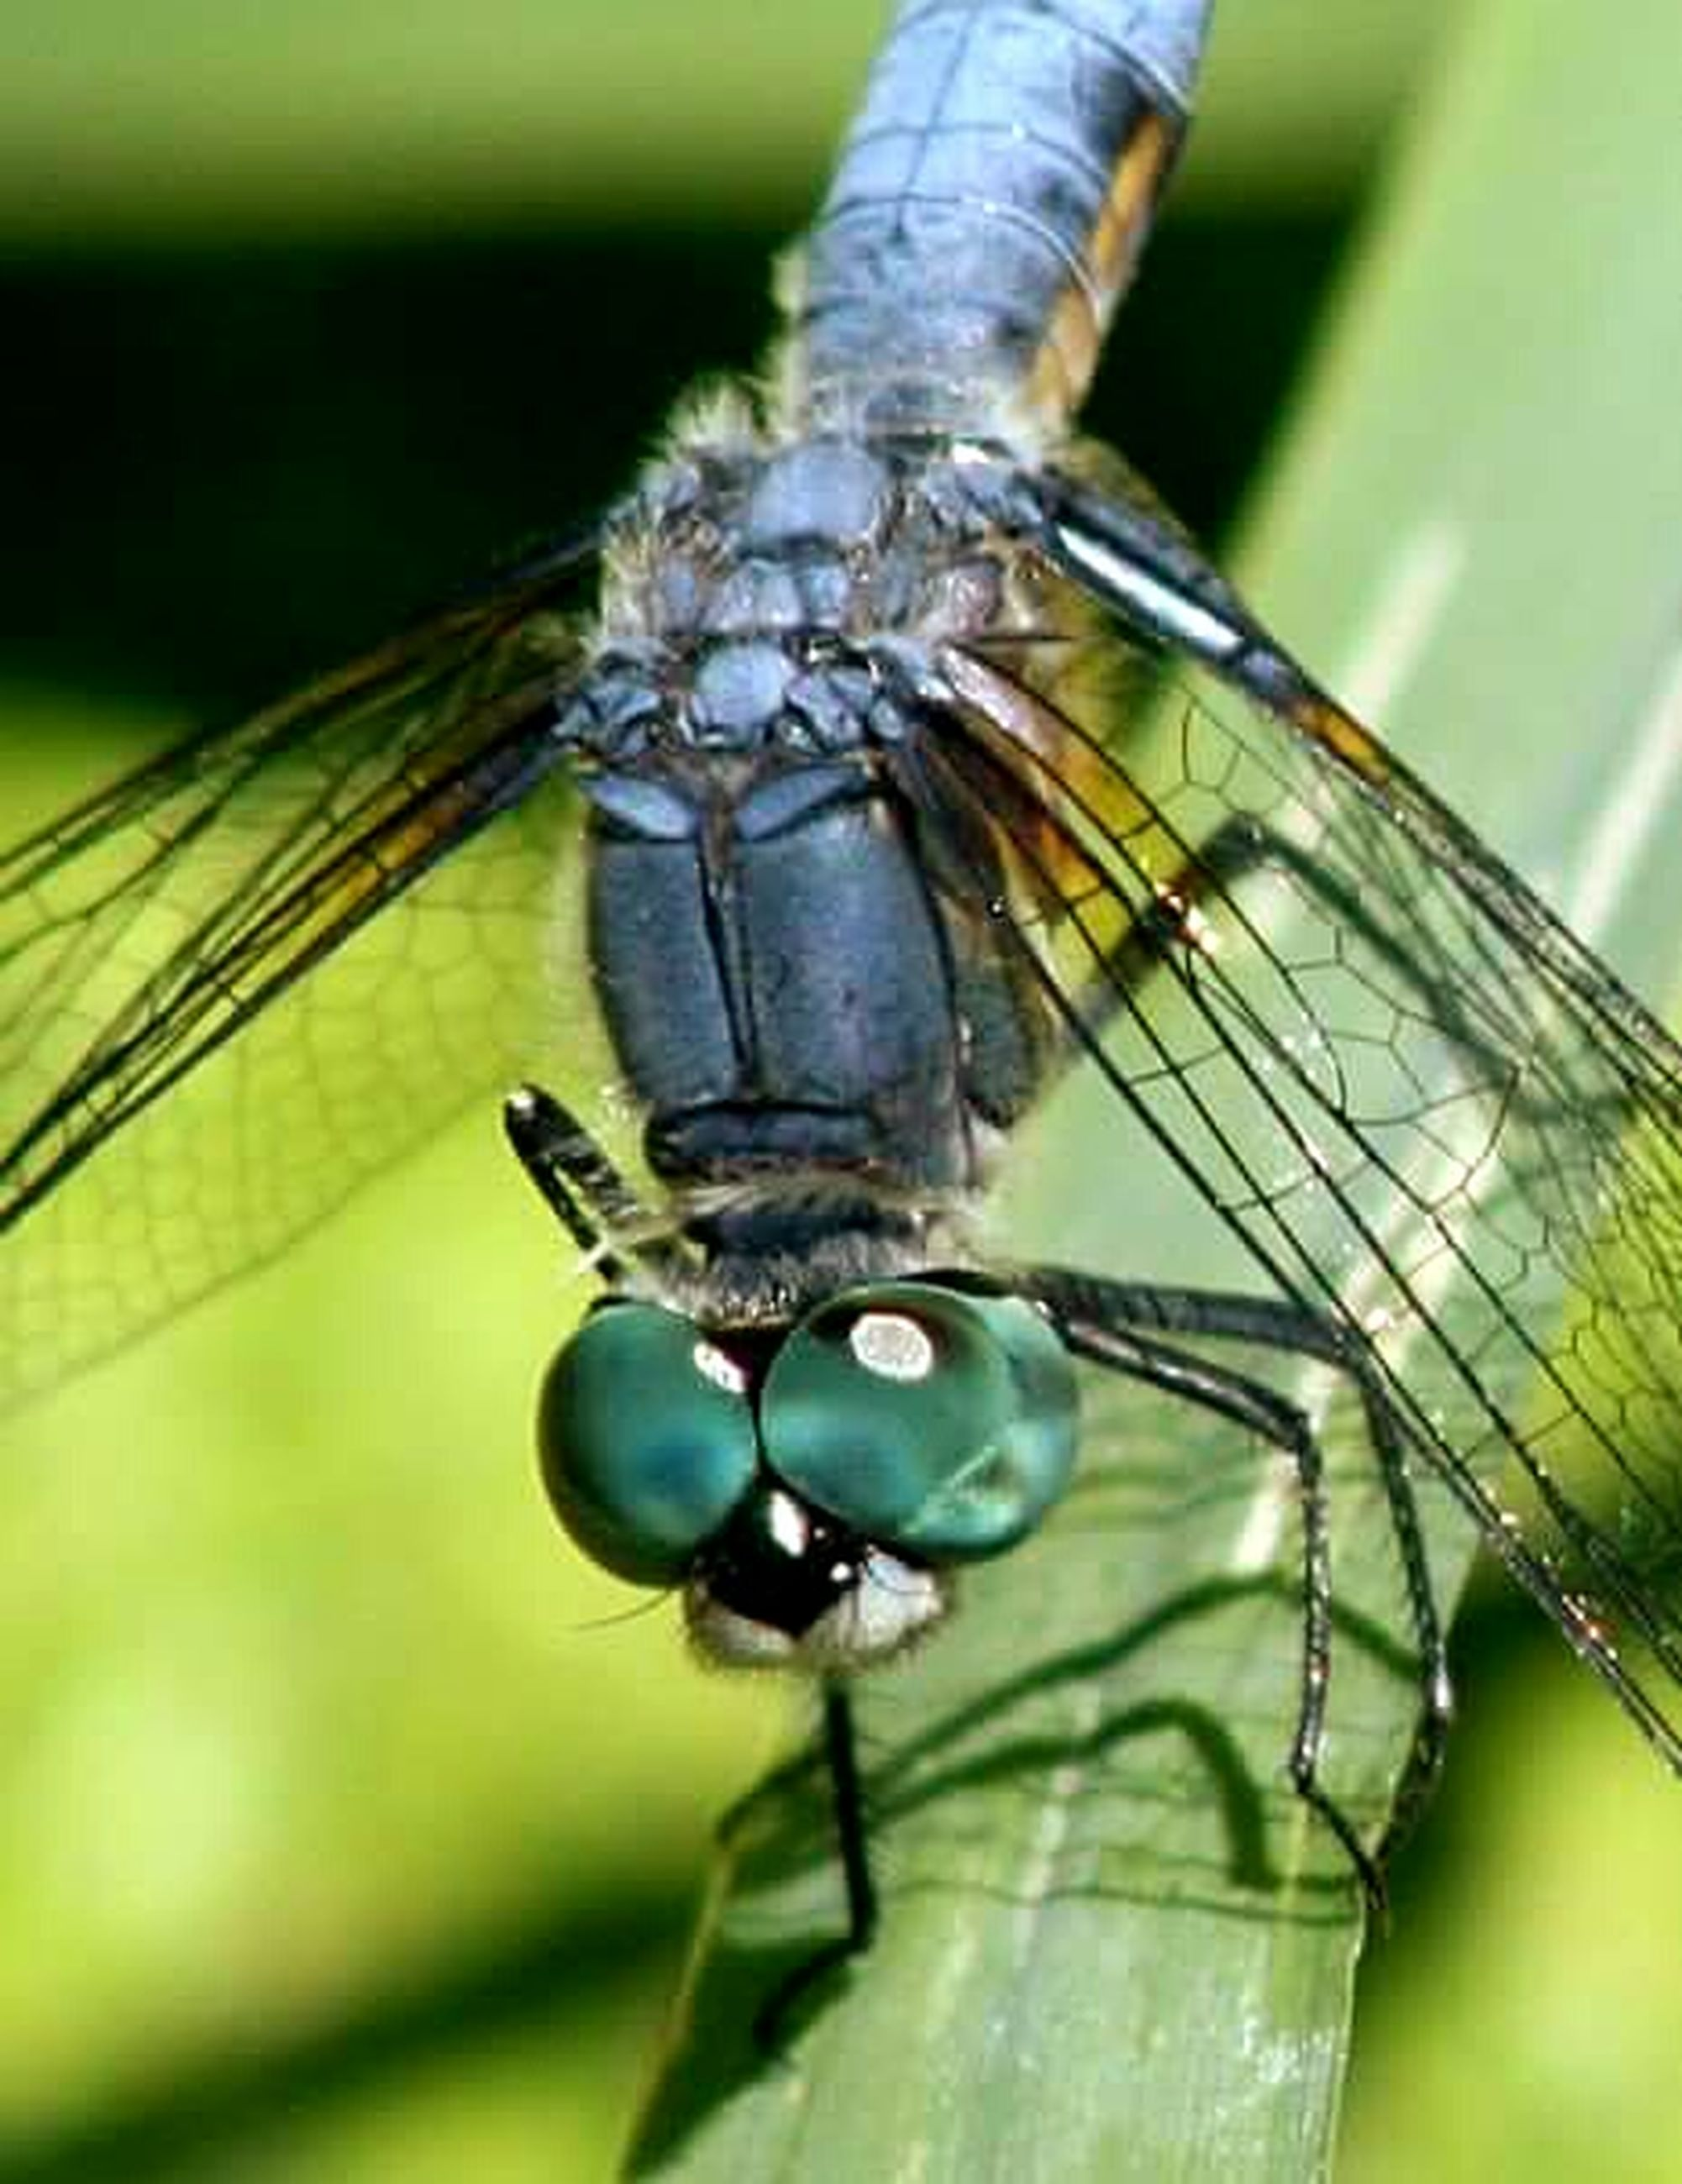 insect, one animal, animal themes, animals in the wild, wildlife, dragonfly, close-up, focus on foreground, animal wing, selective focus, spider, green color, day, zoology, nature, outdoors, animal antenna, invertebrate, no people, animal body part